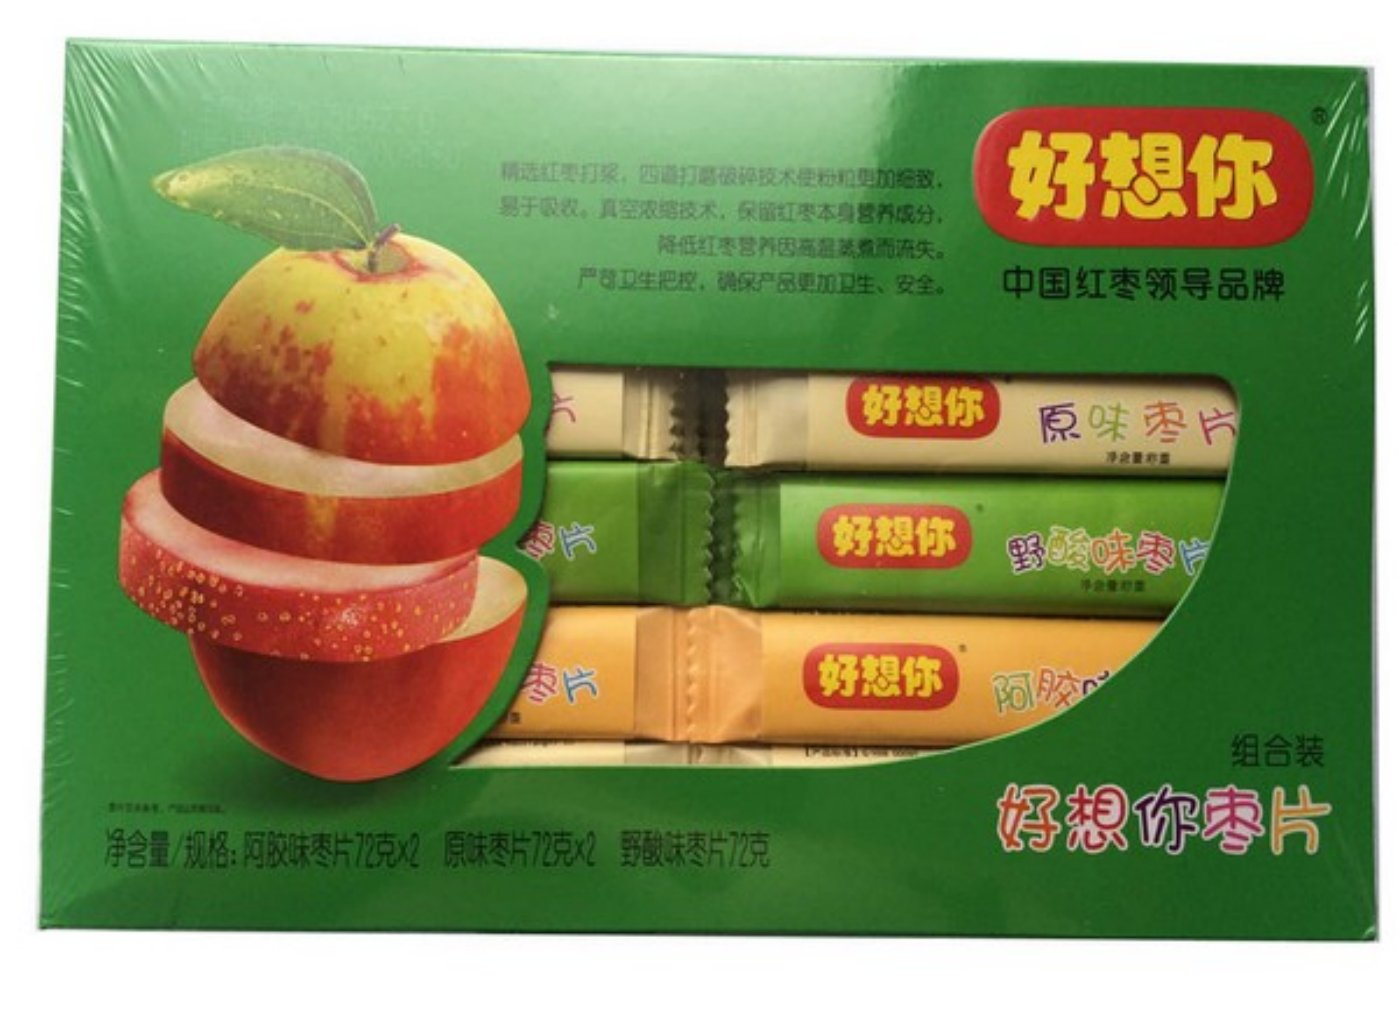 Xinjiang Specialty: Haoxiangni Multi-flavor Red Dates Natural Jujube Slices As Office Snacks or Gifts 360g/12.7oz (100pcs)